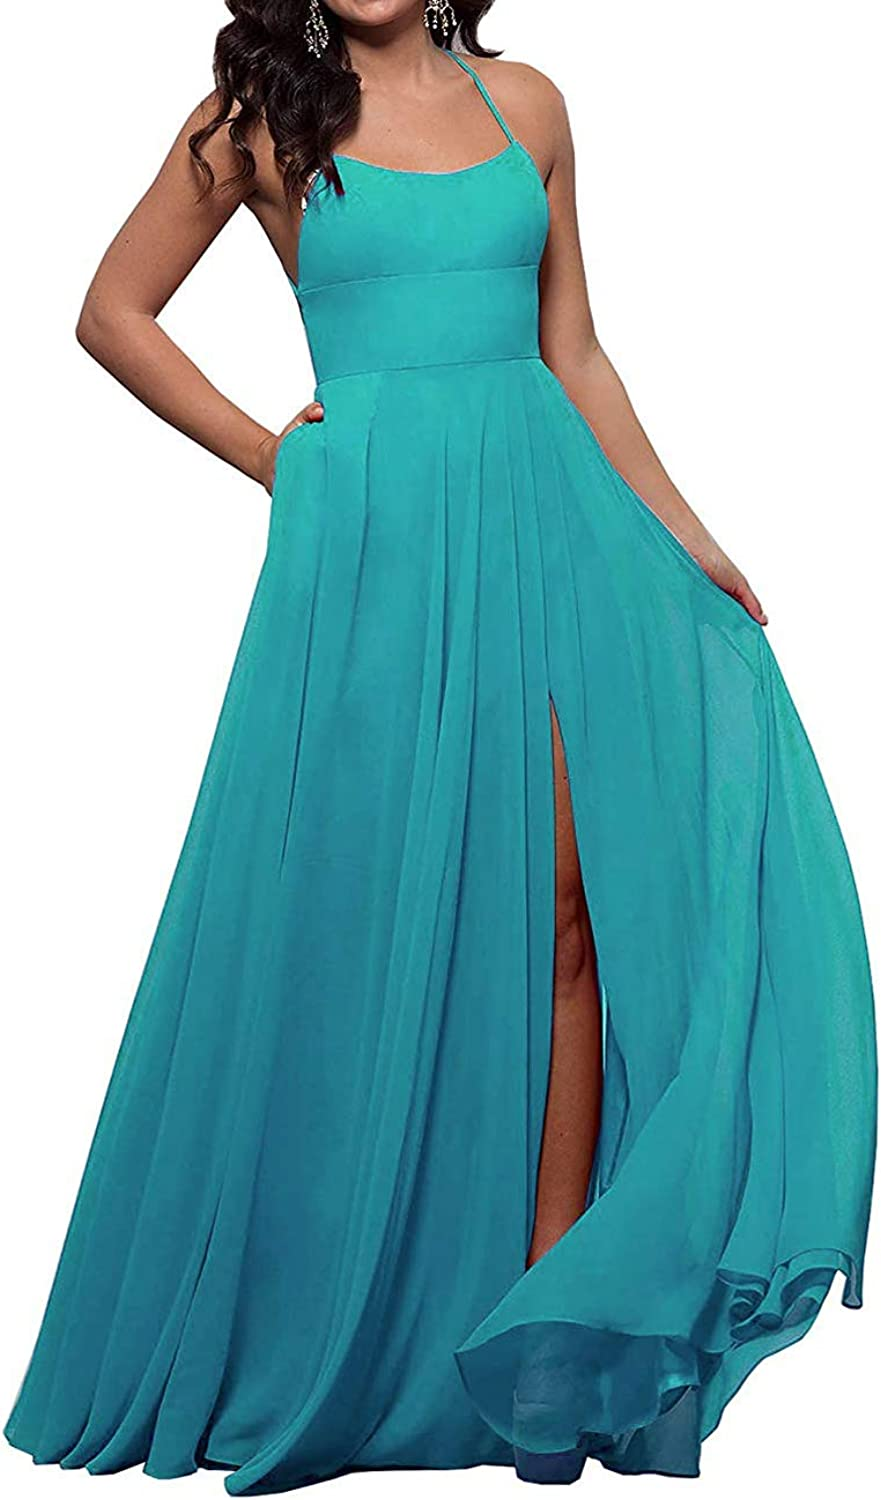 ALine StraightNeck Long Prom Gown for Women Sexy Side Slit Bridesmaid Dresses